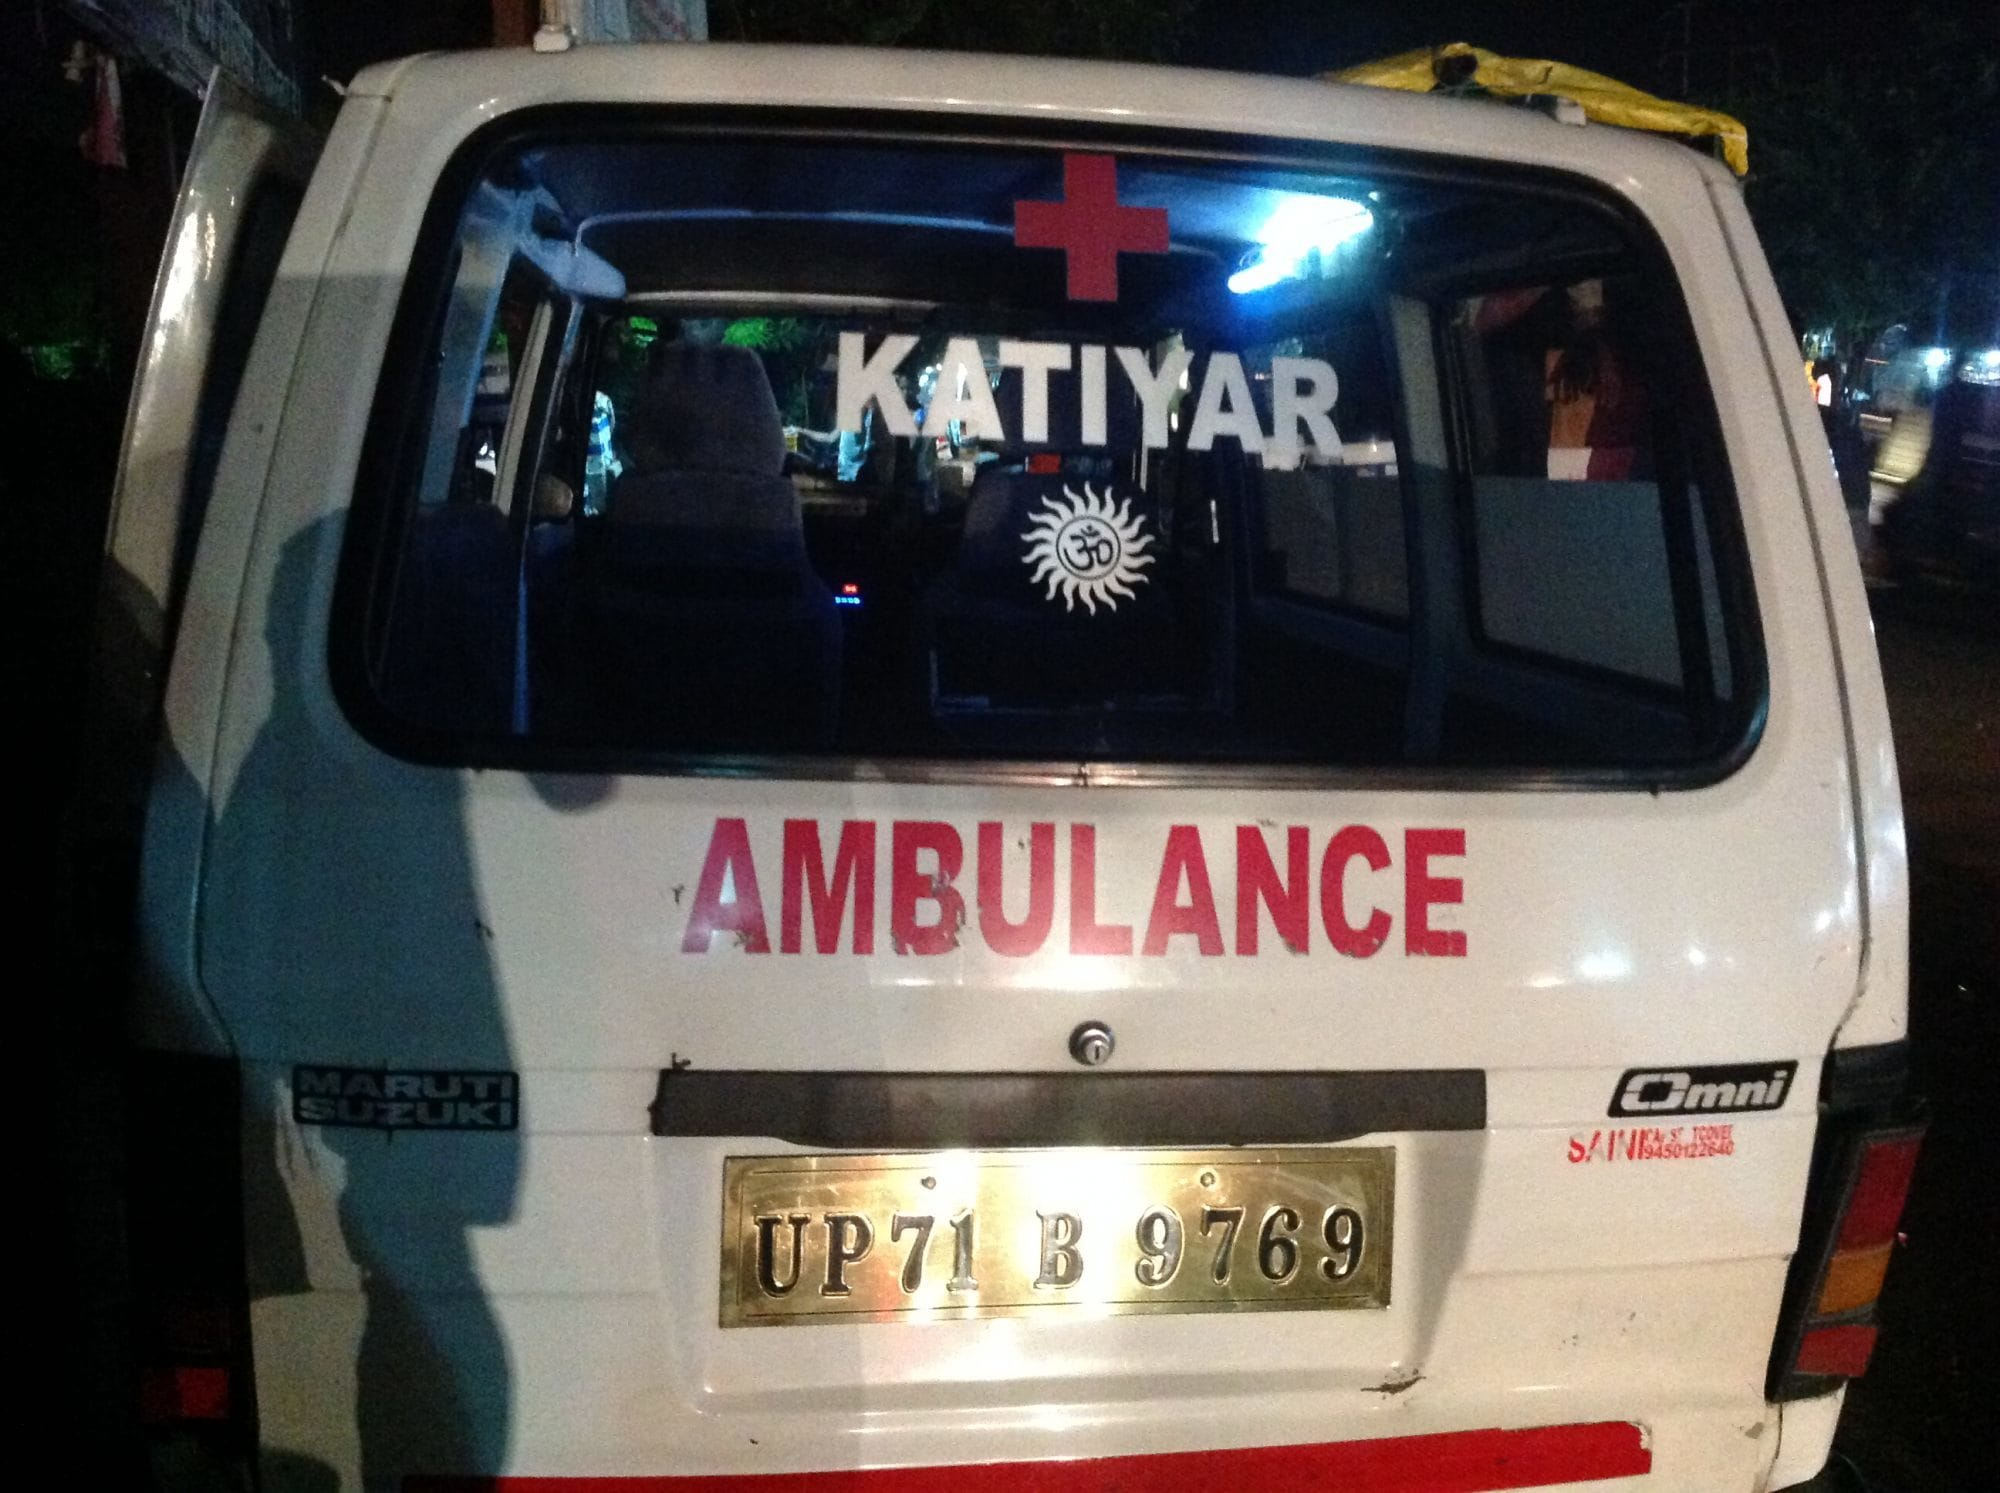 Top Mortuary Vans On Hire in Kanpur - Best Mortuary Vans On